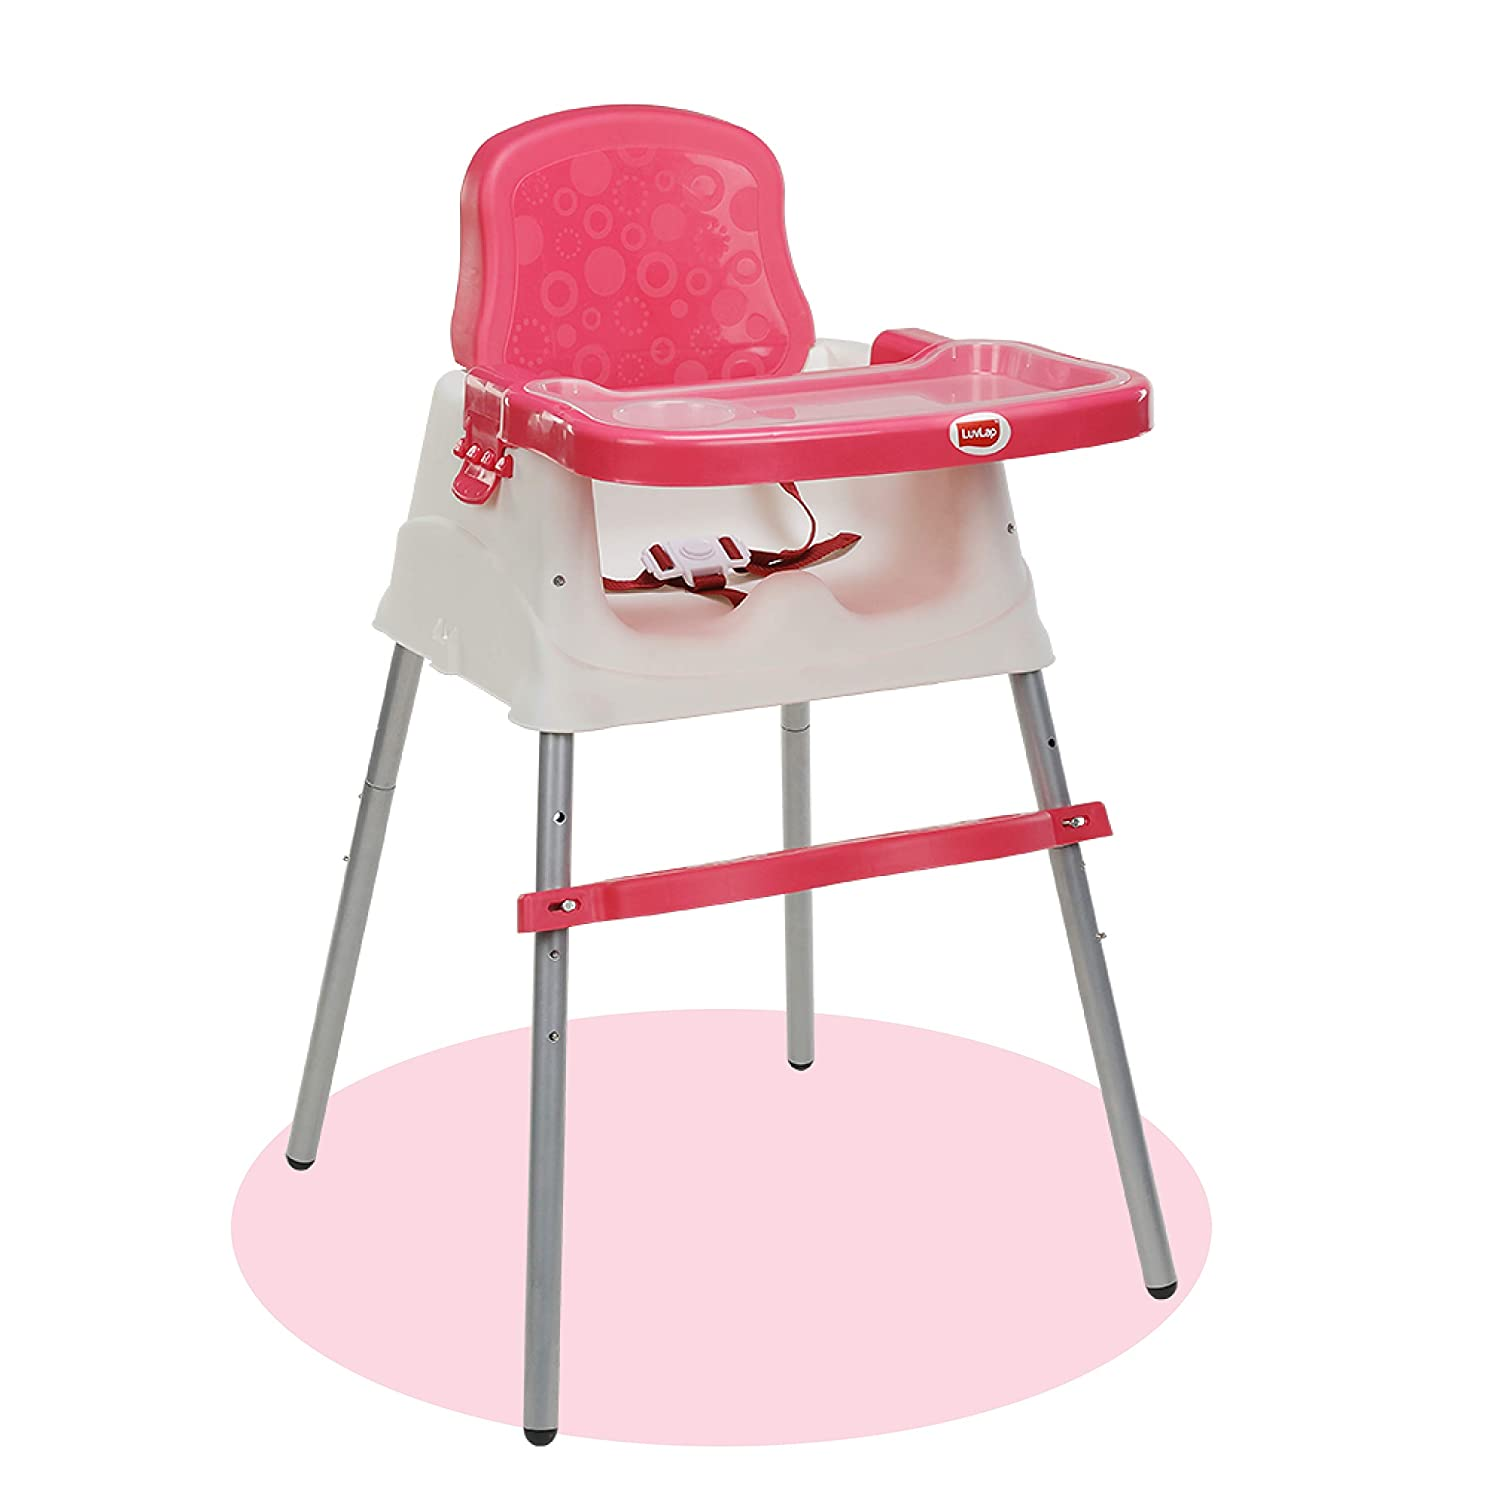 3 In 1 Feeding High Chair Table With Removable Foot-Pink